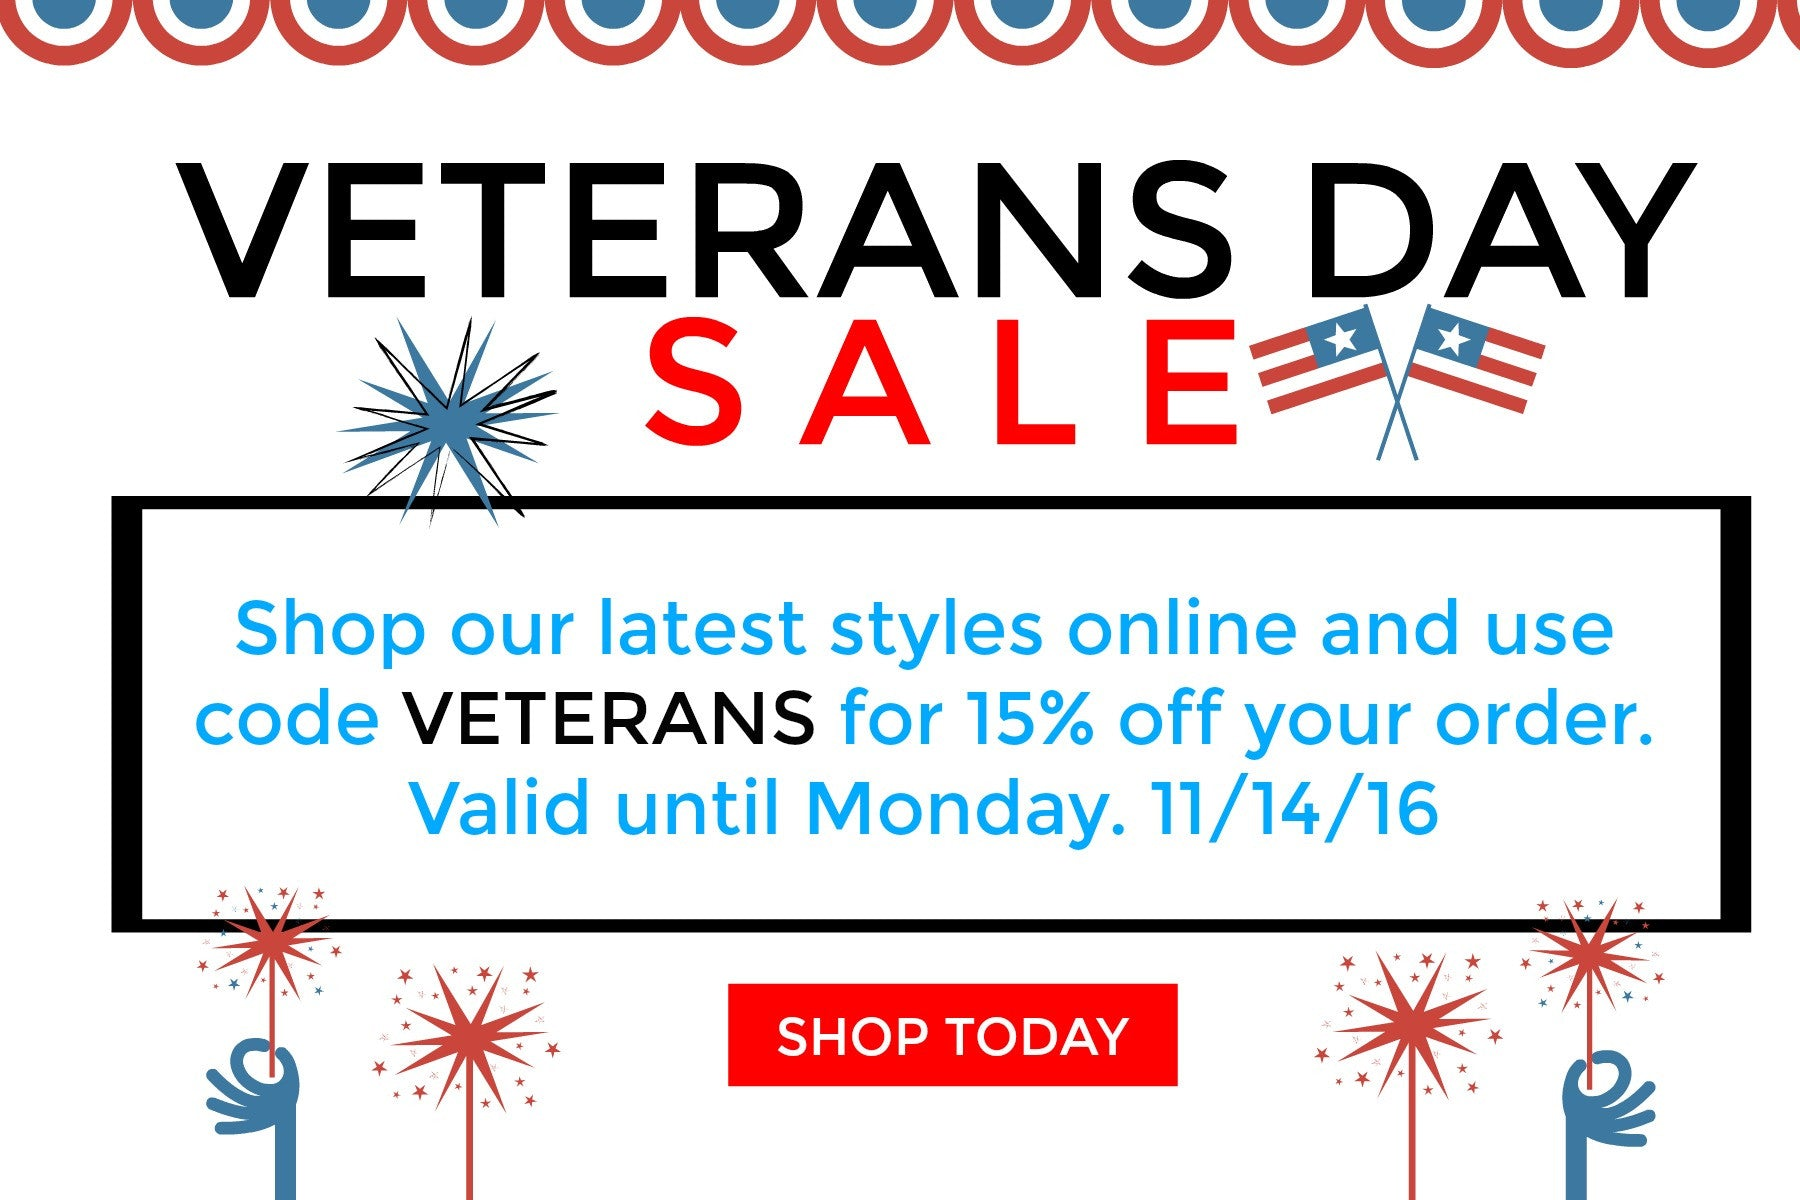 Veteran's Day Sale!